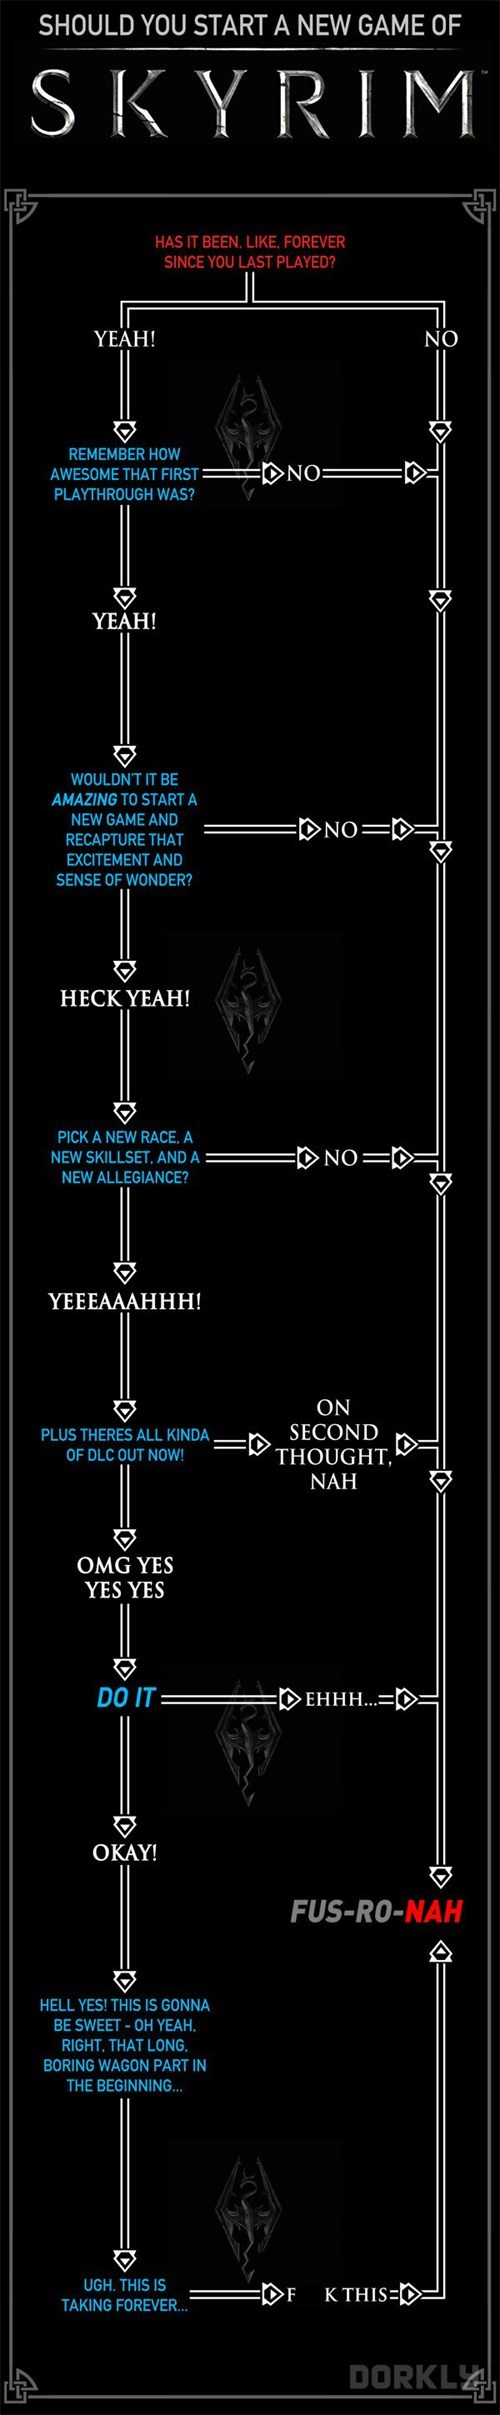 dorkly charts flowcharts video games Skyrim